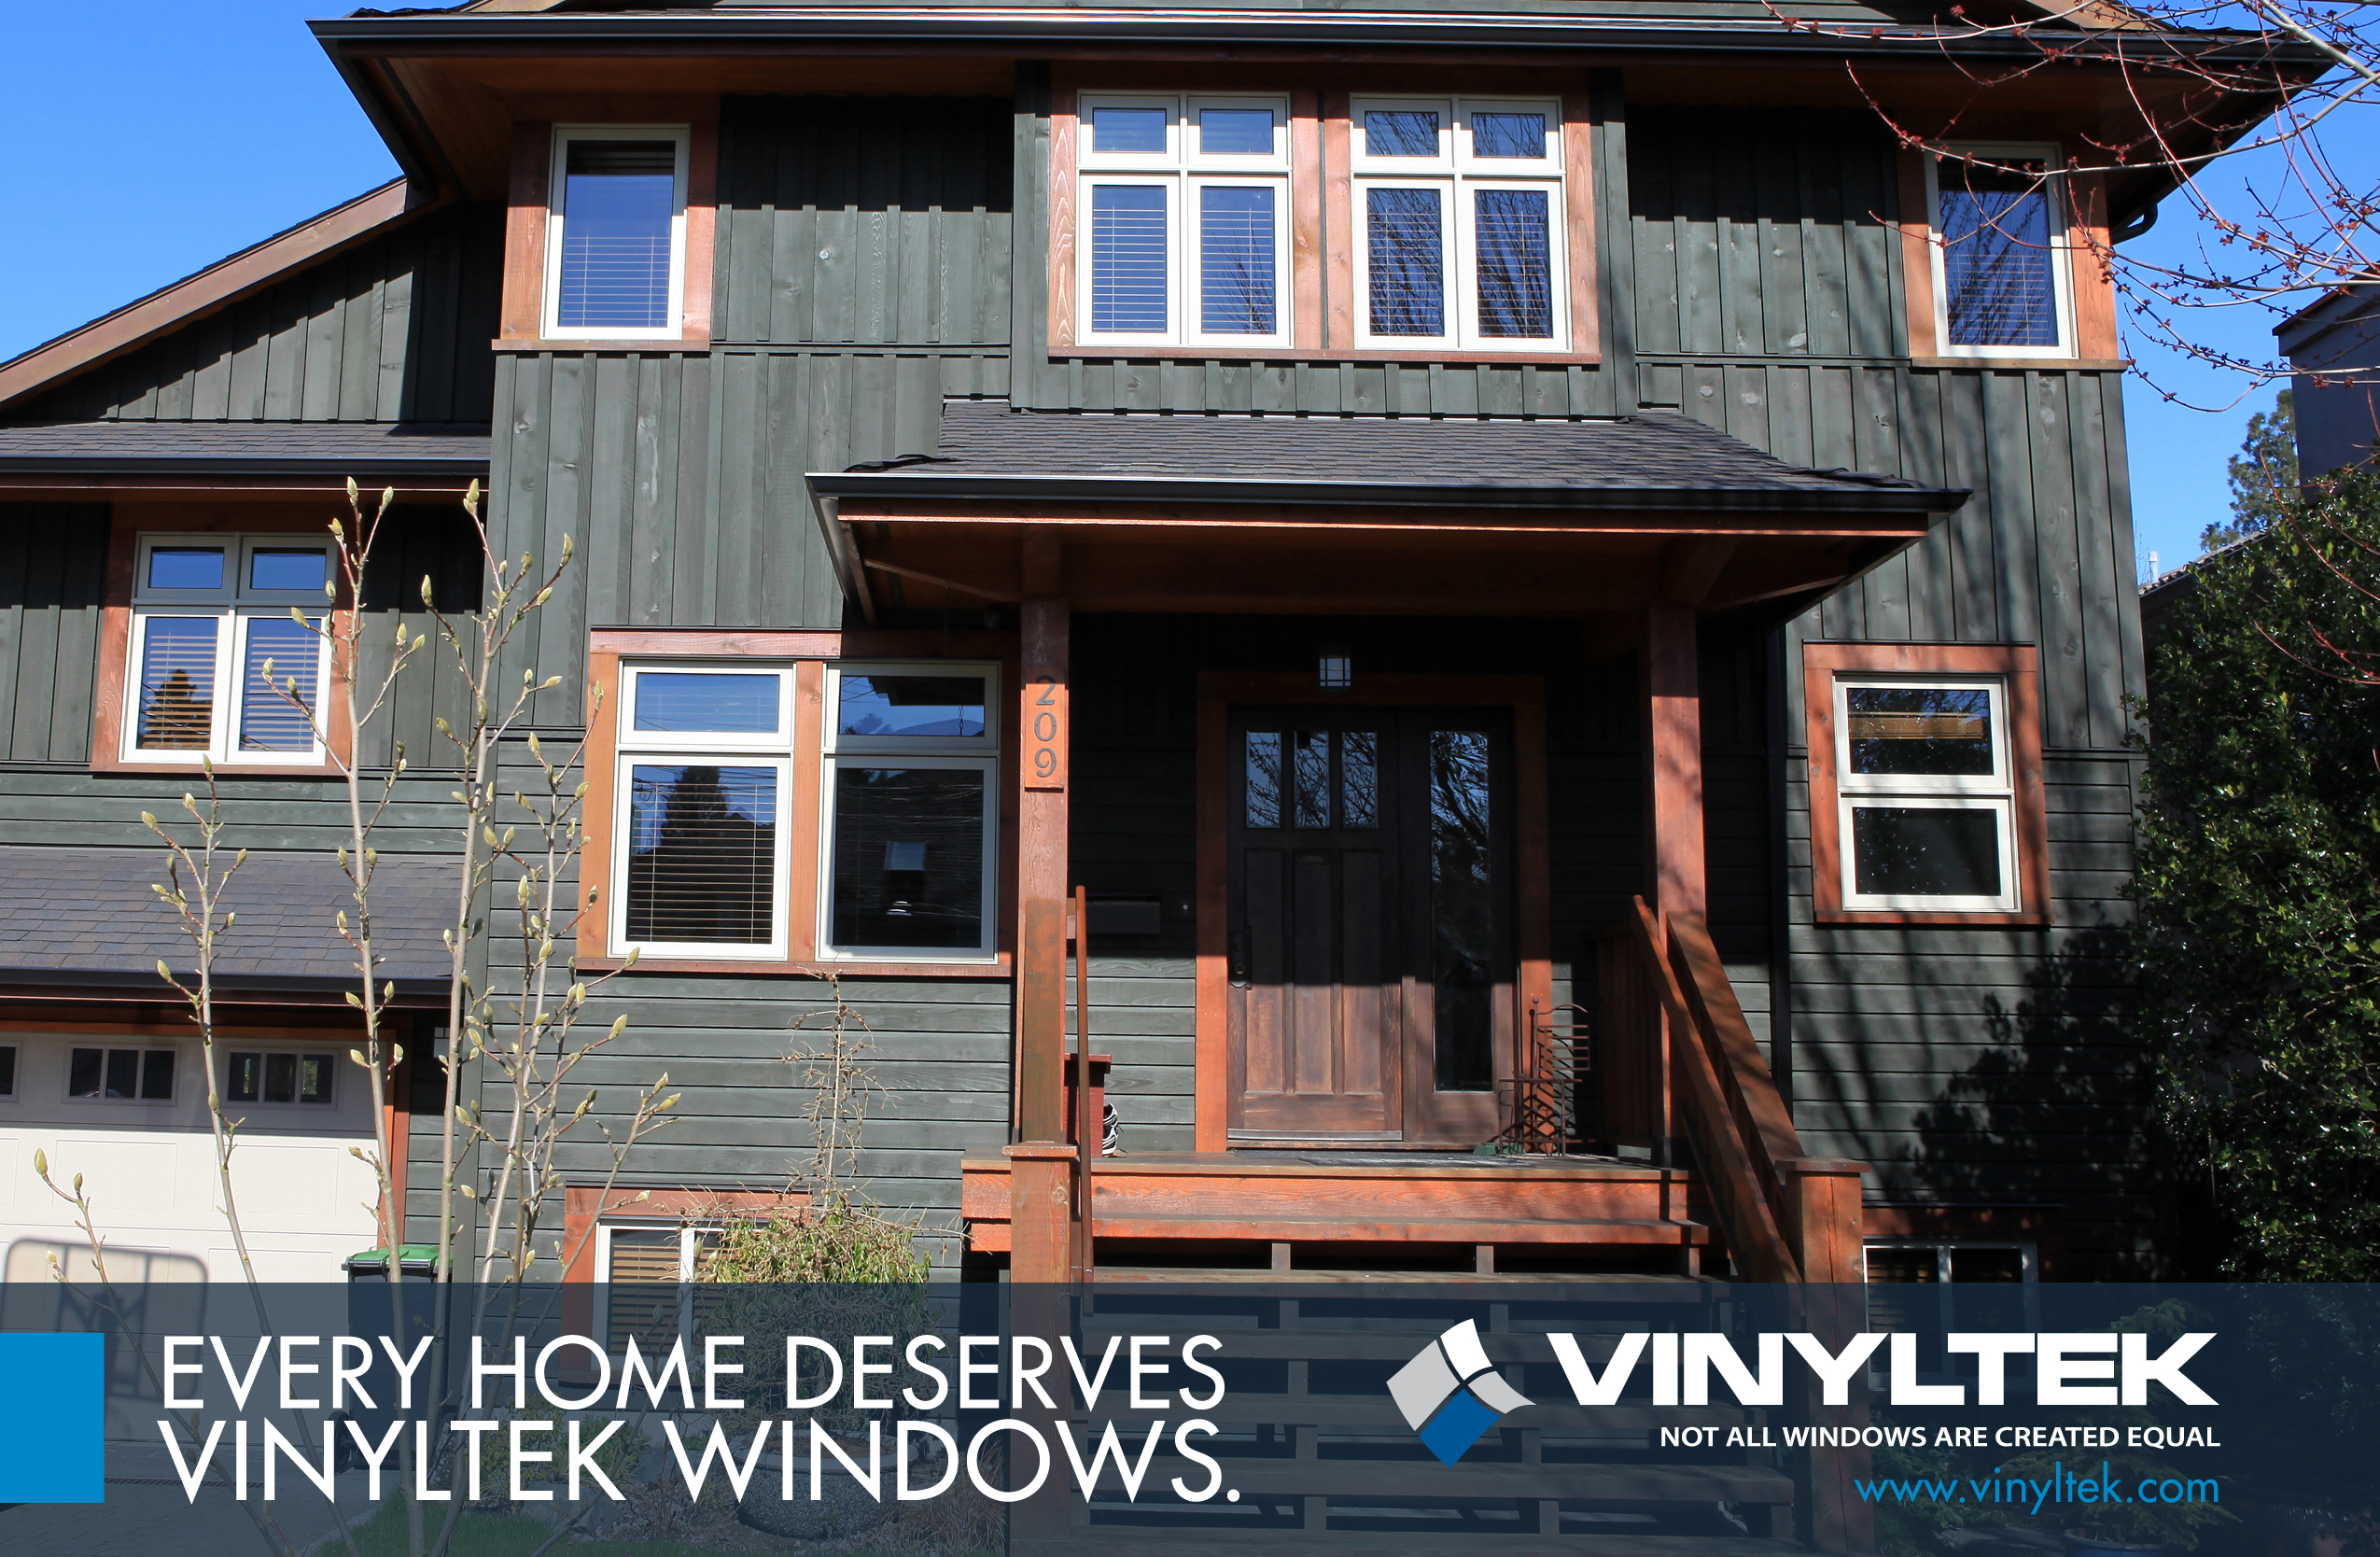 New windows of different sizes on a pacific northwest styled home